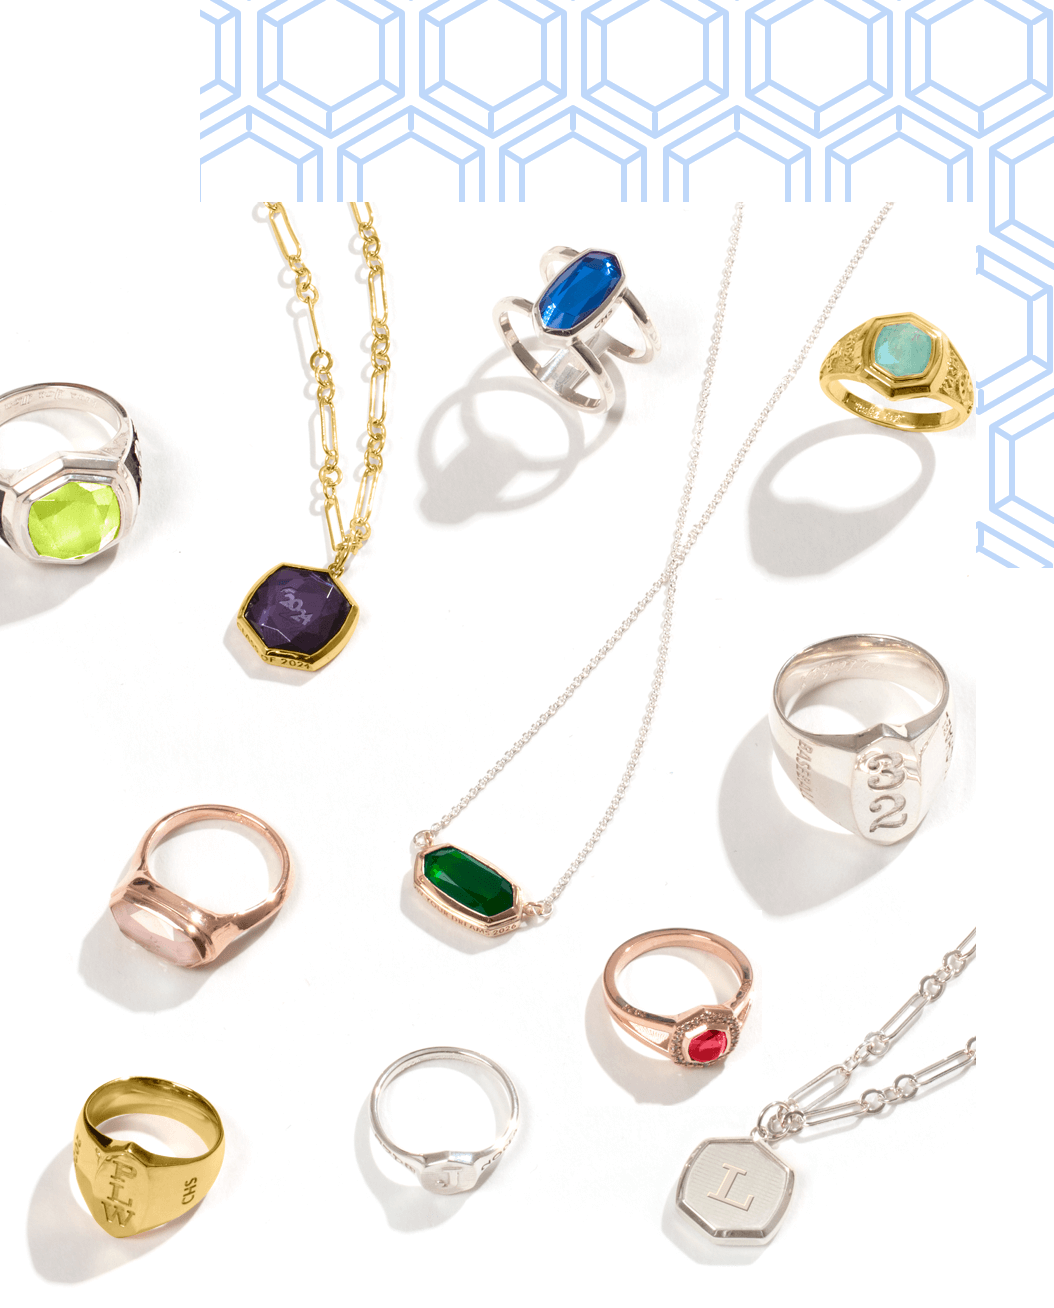 A group of Kendra Scott Highschool Rings, and Kendra Scott Necklaces